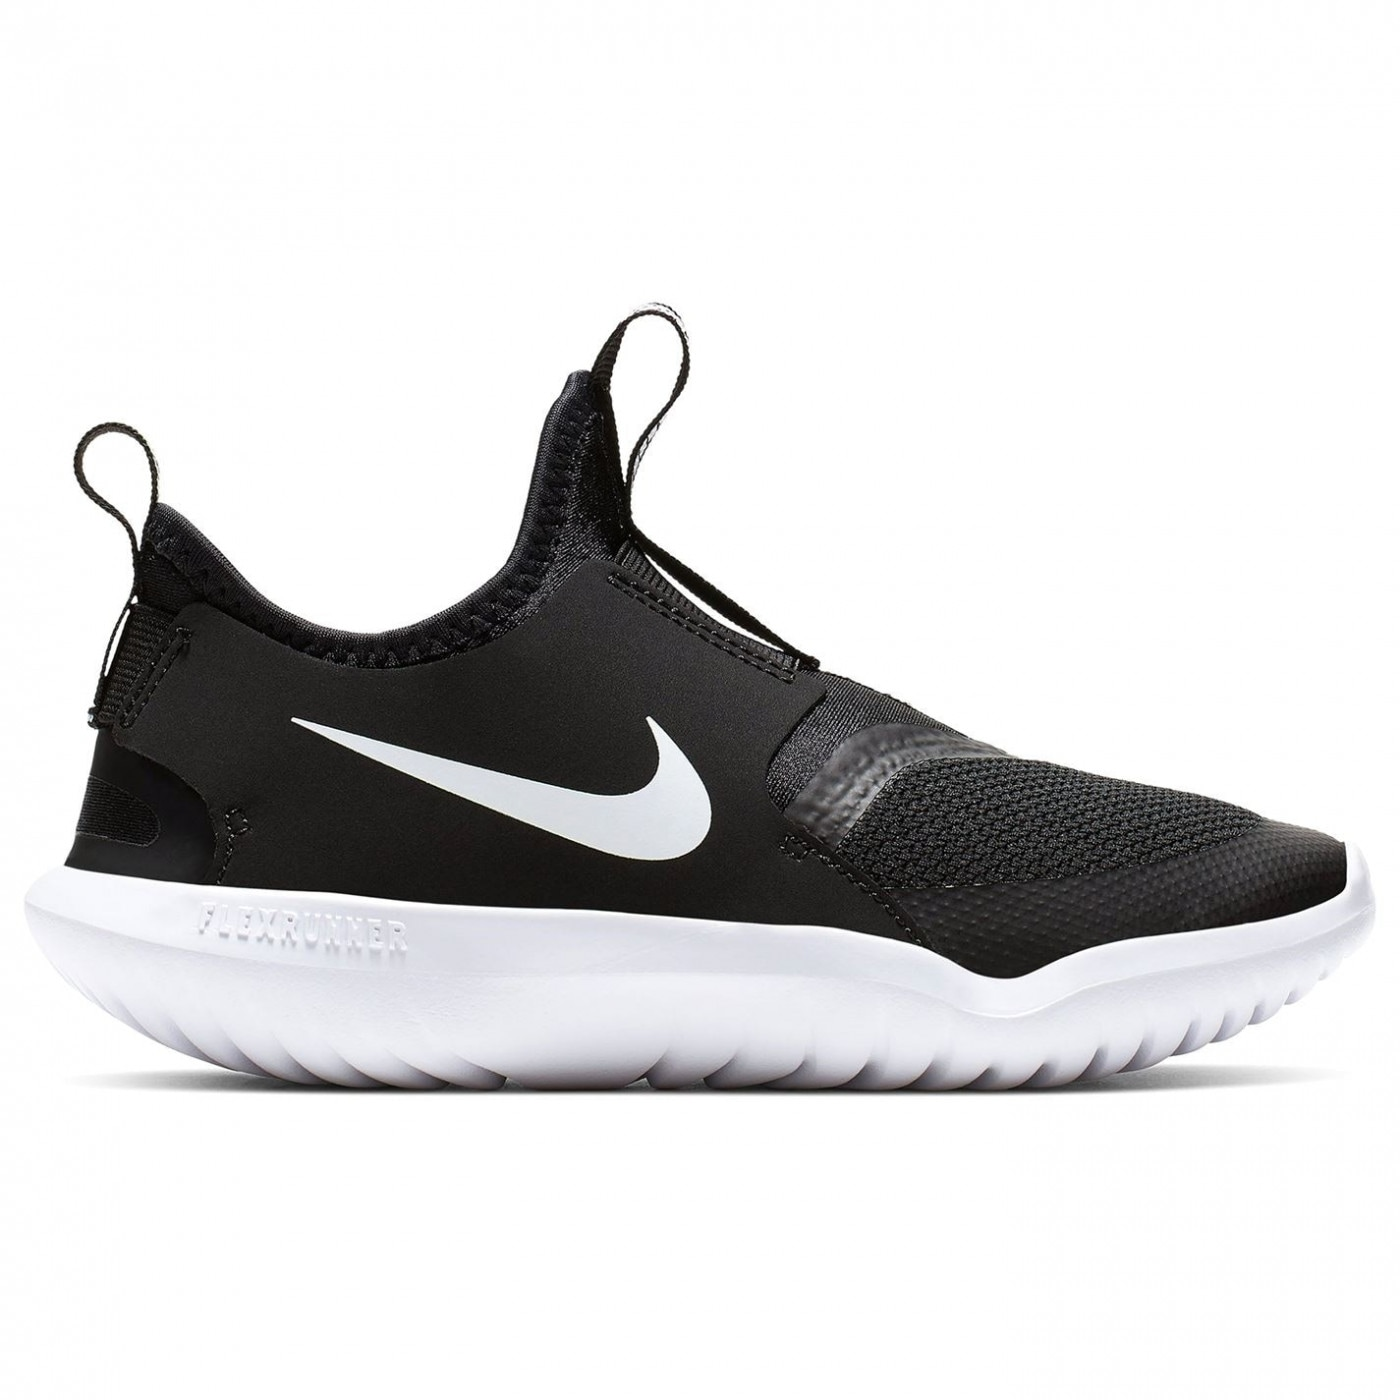 Nike Flex Runner Little Kids' Shoe